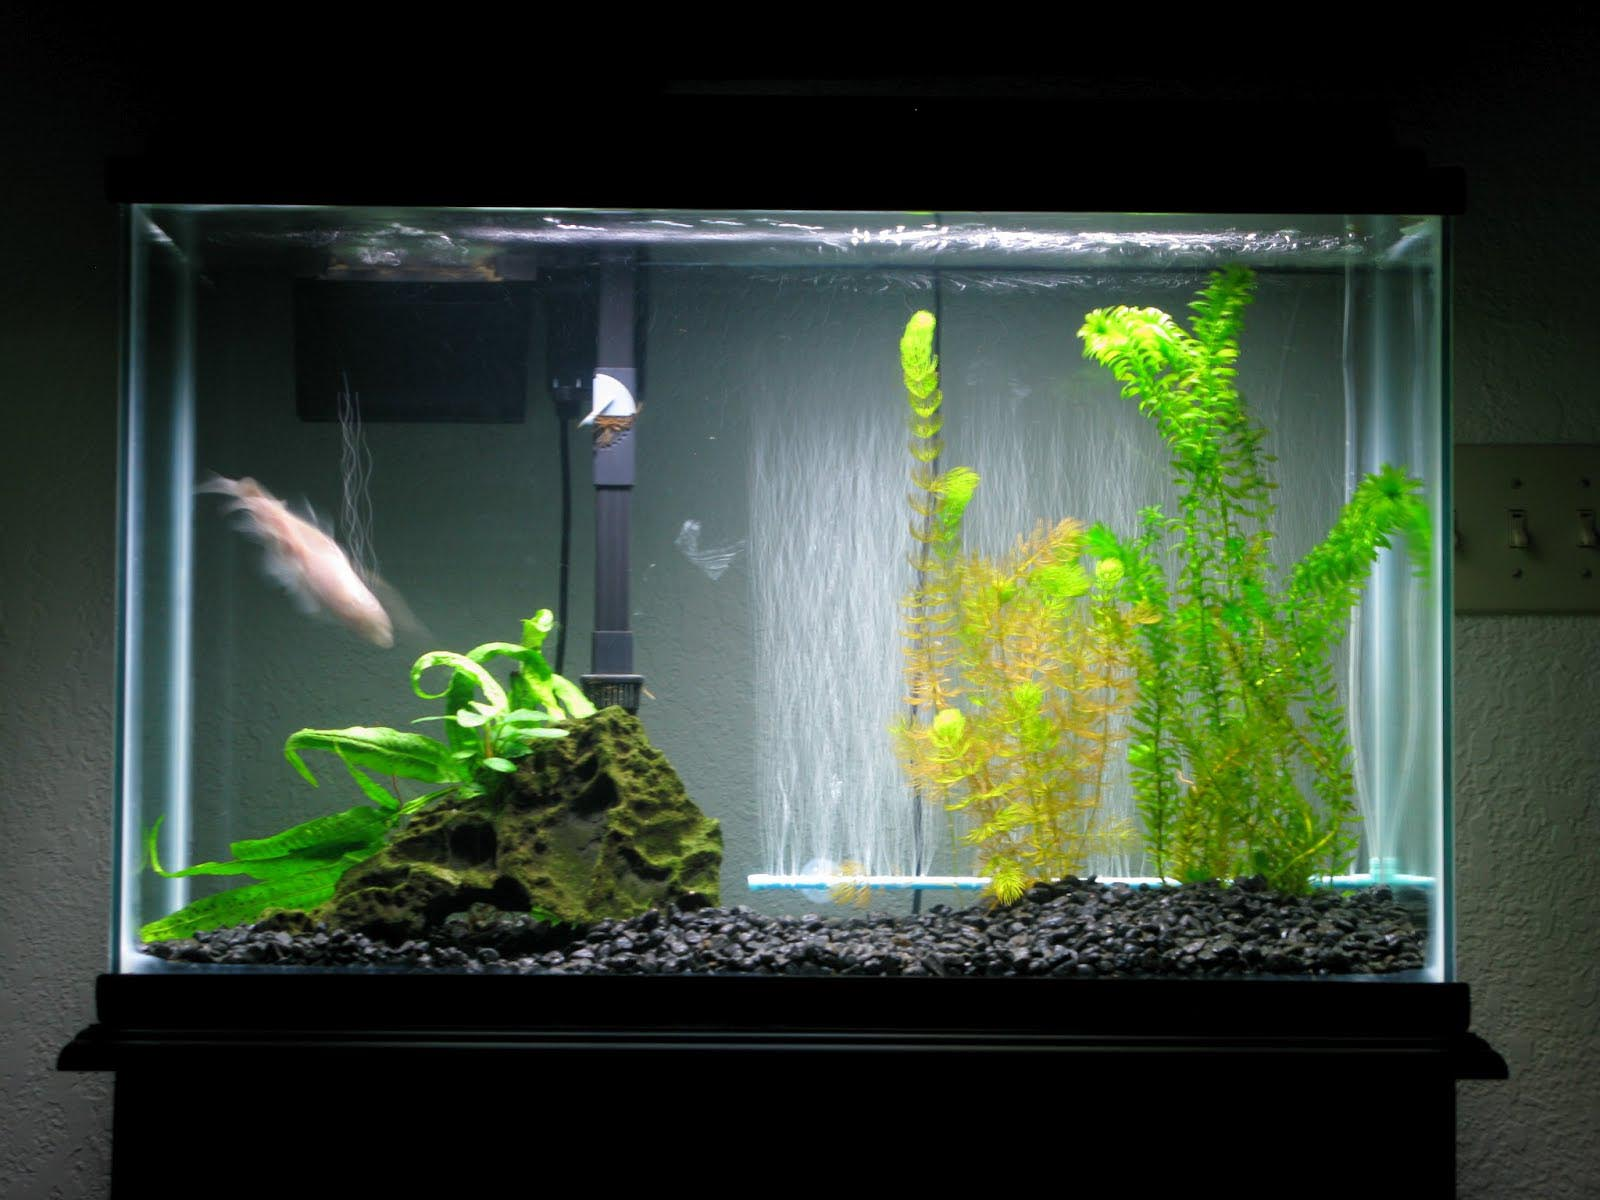 Best aquarium for betta fish aquarium design ideas for Good fish for small tanks